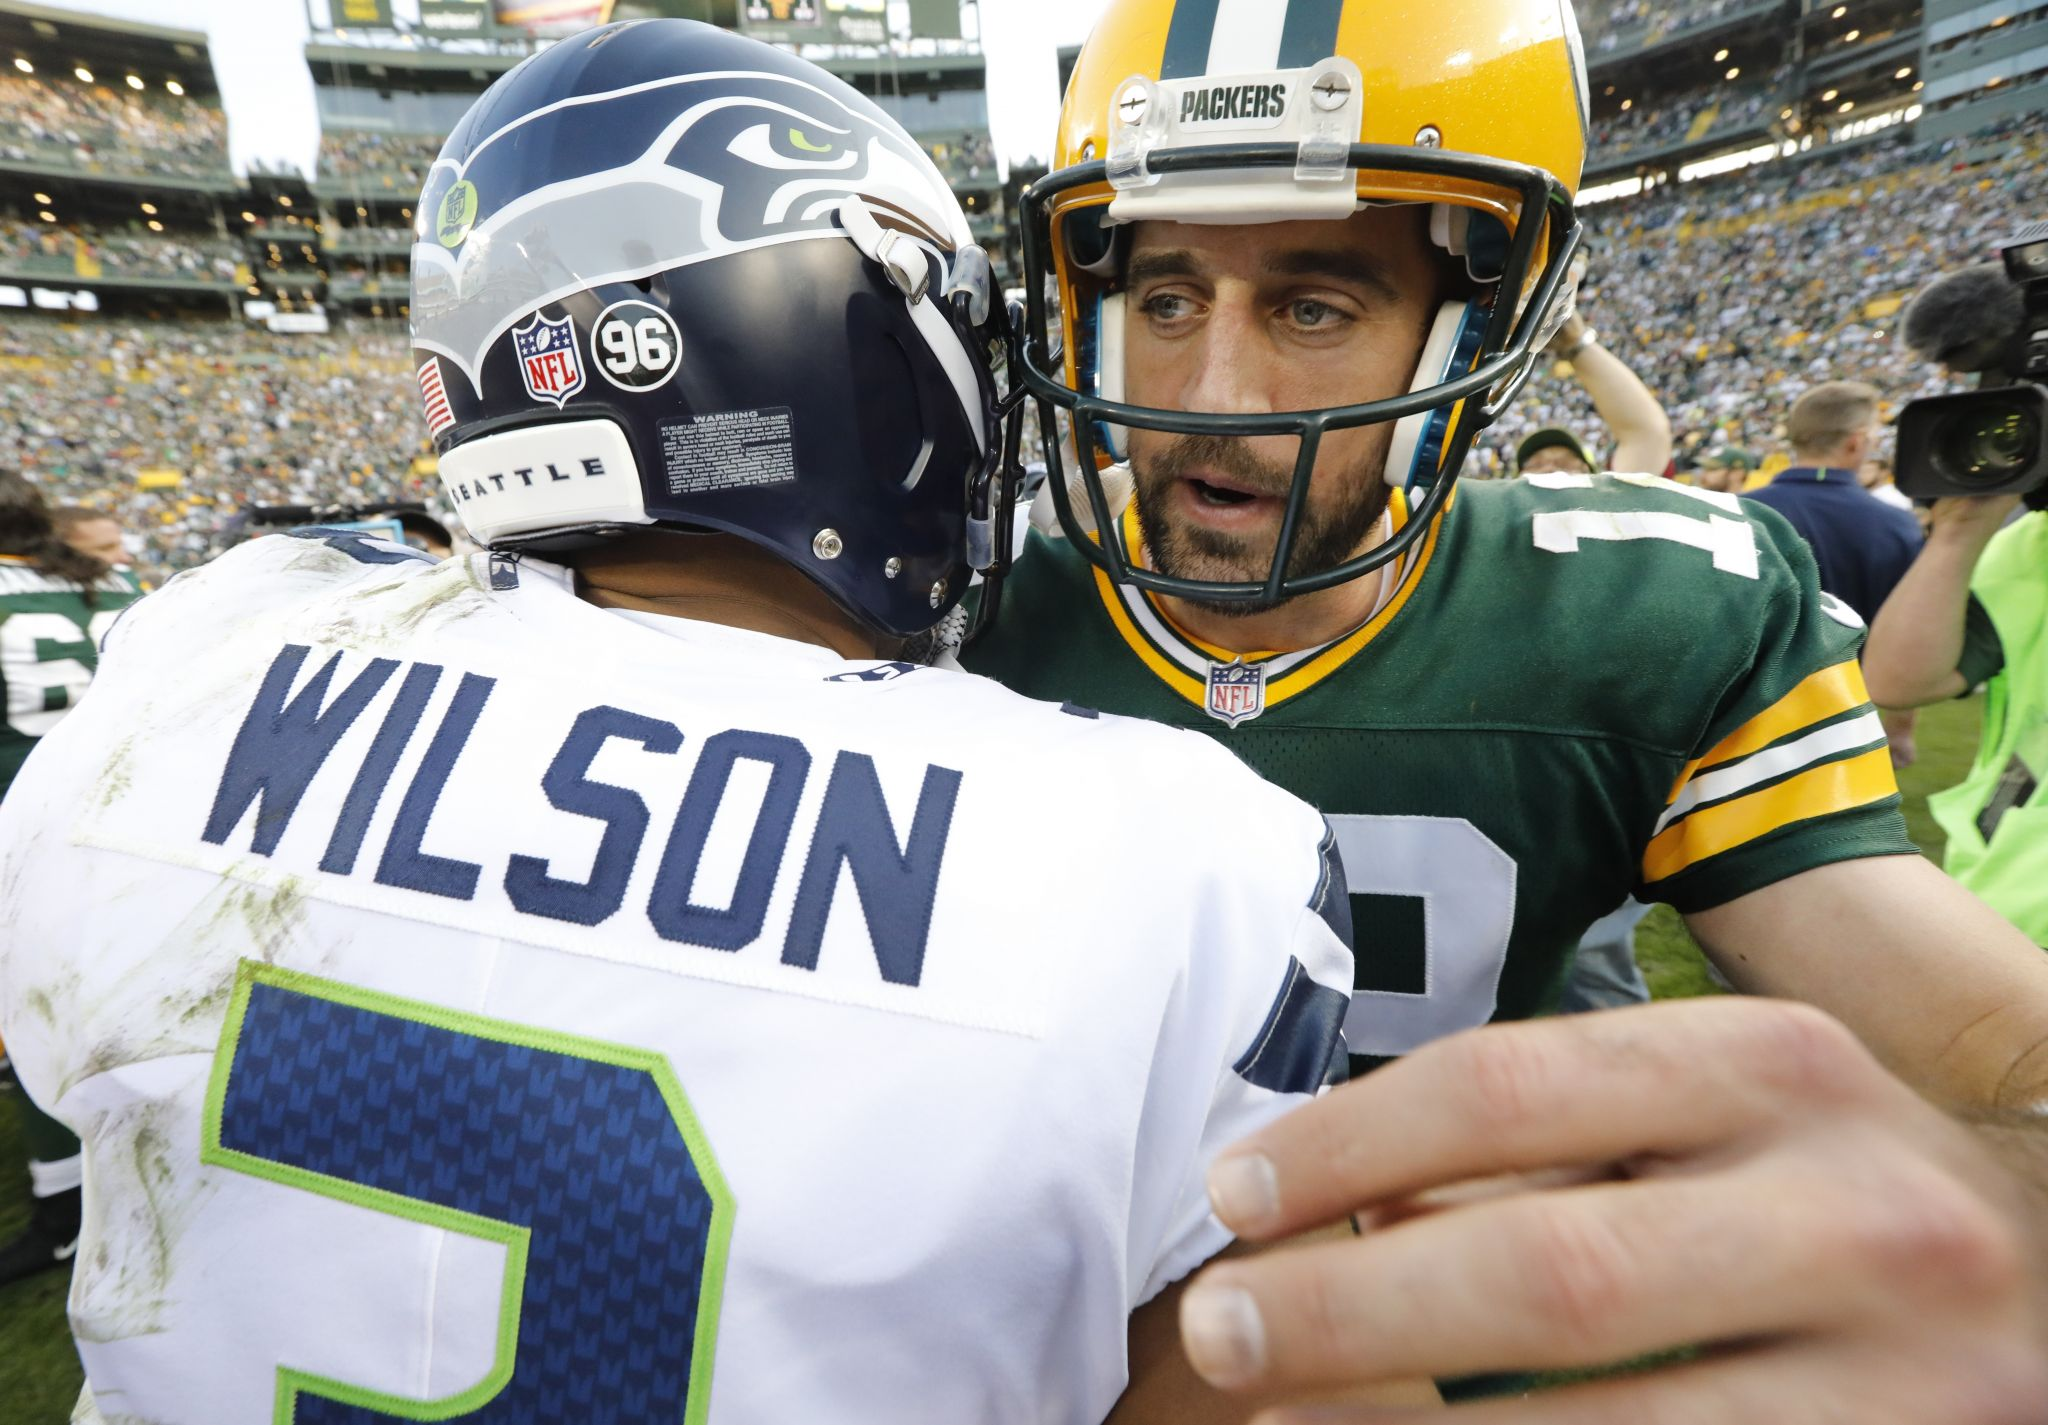 Live: Seattle Seahawks host Packers at CenturyLink